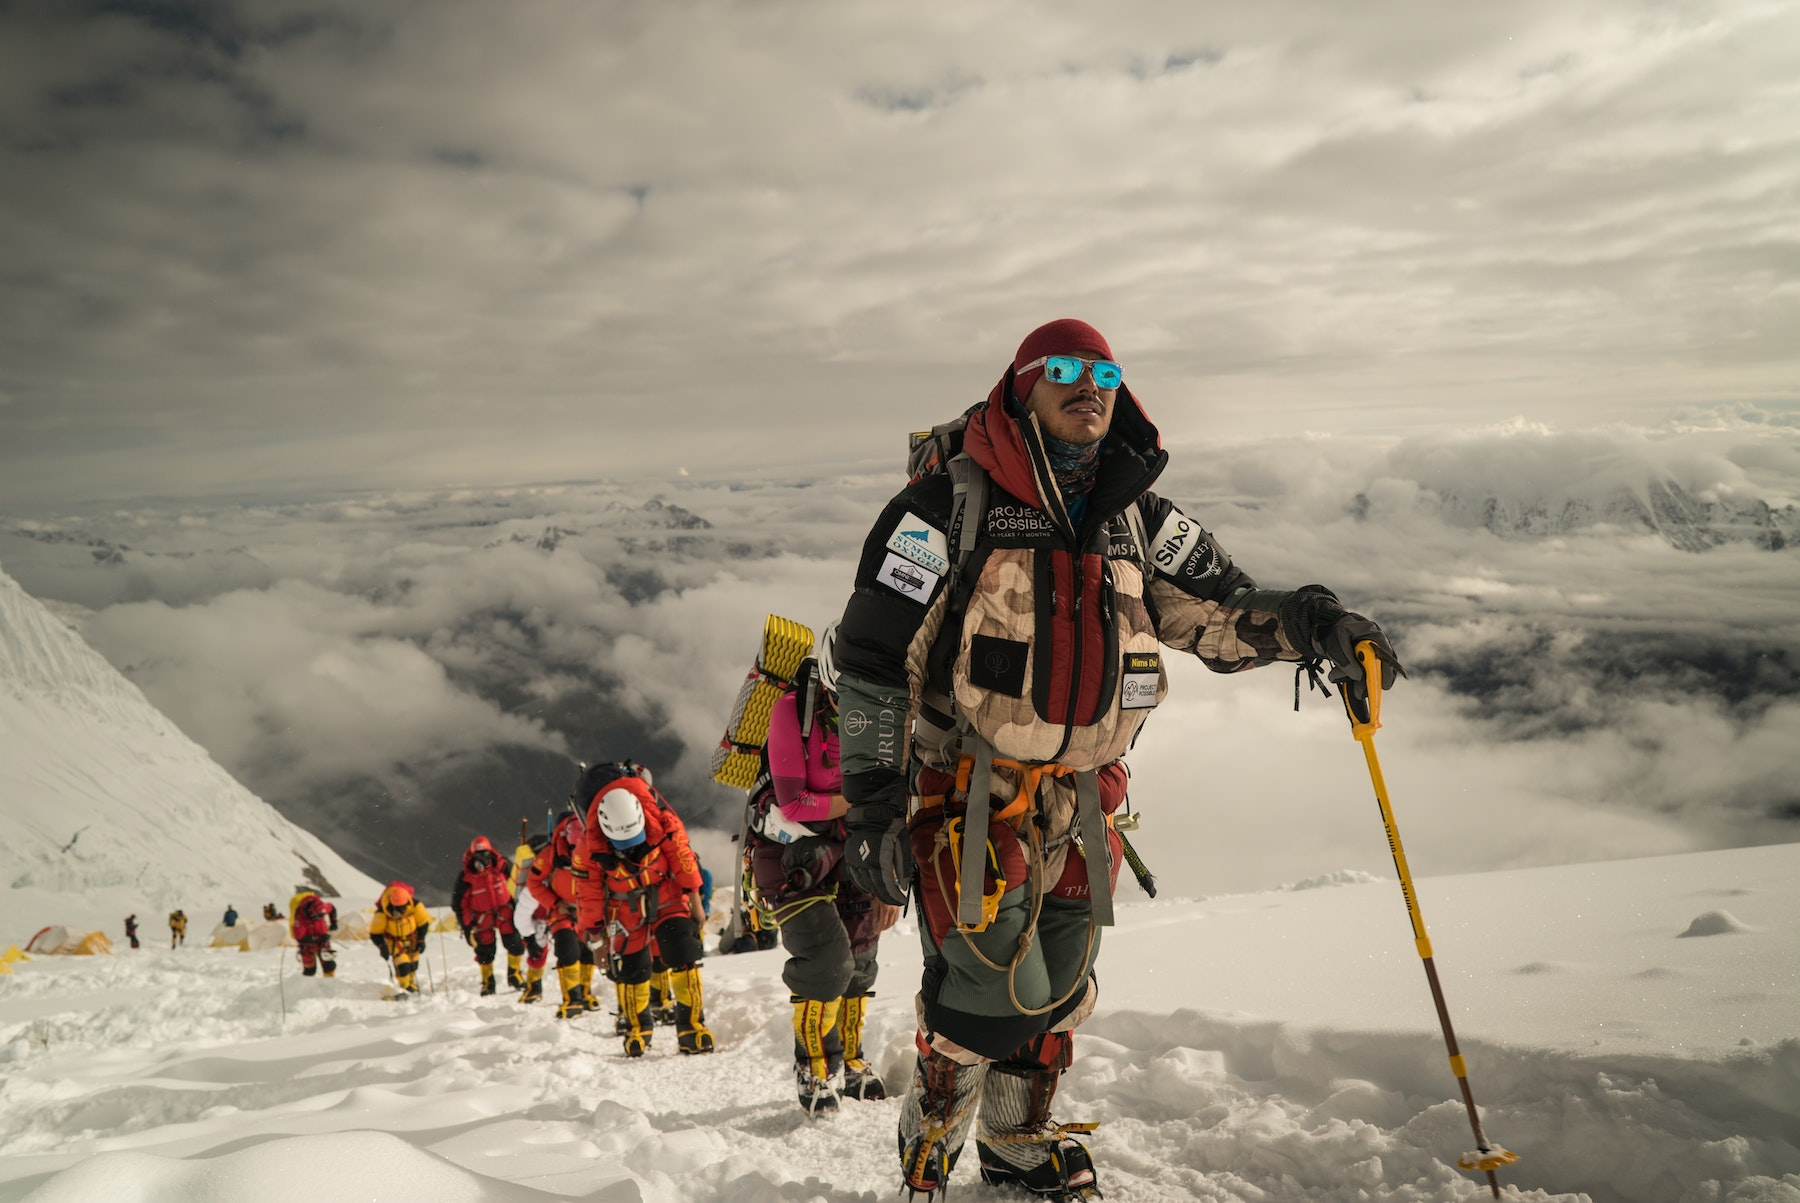 Our leader Nimsdai leading the way during Manaslu Ascent